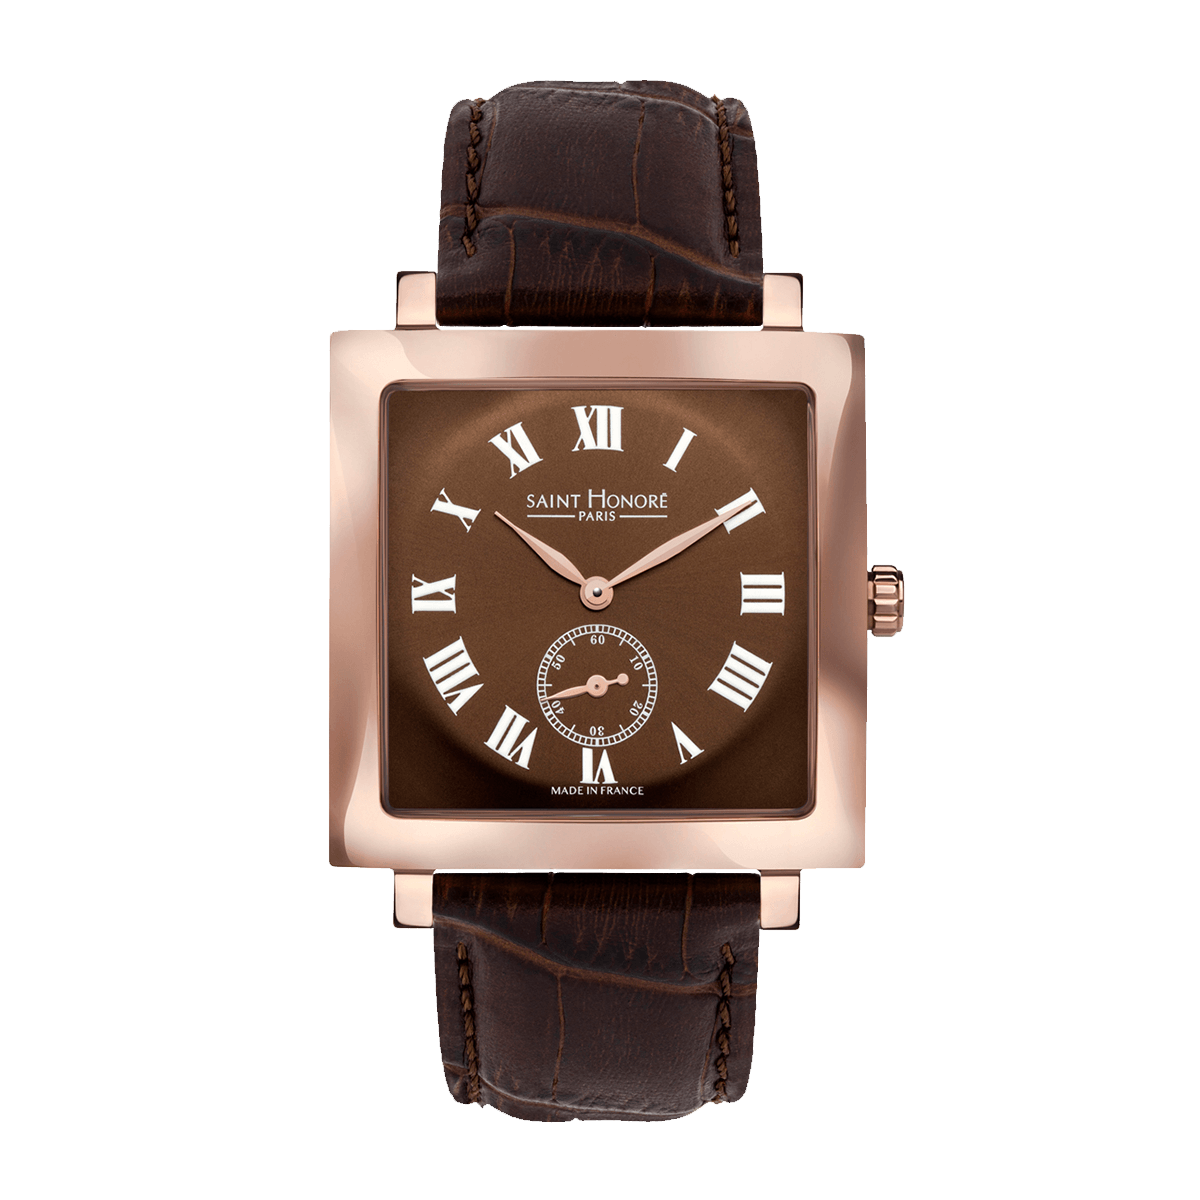 CARREE Men's watch - Square rose gold finish case, brown dial, brown leather strap